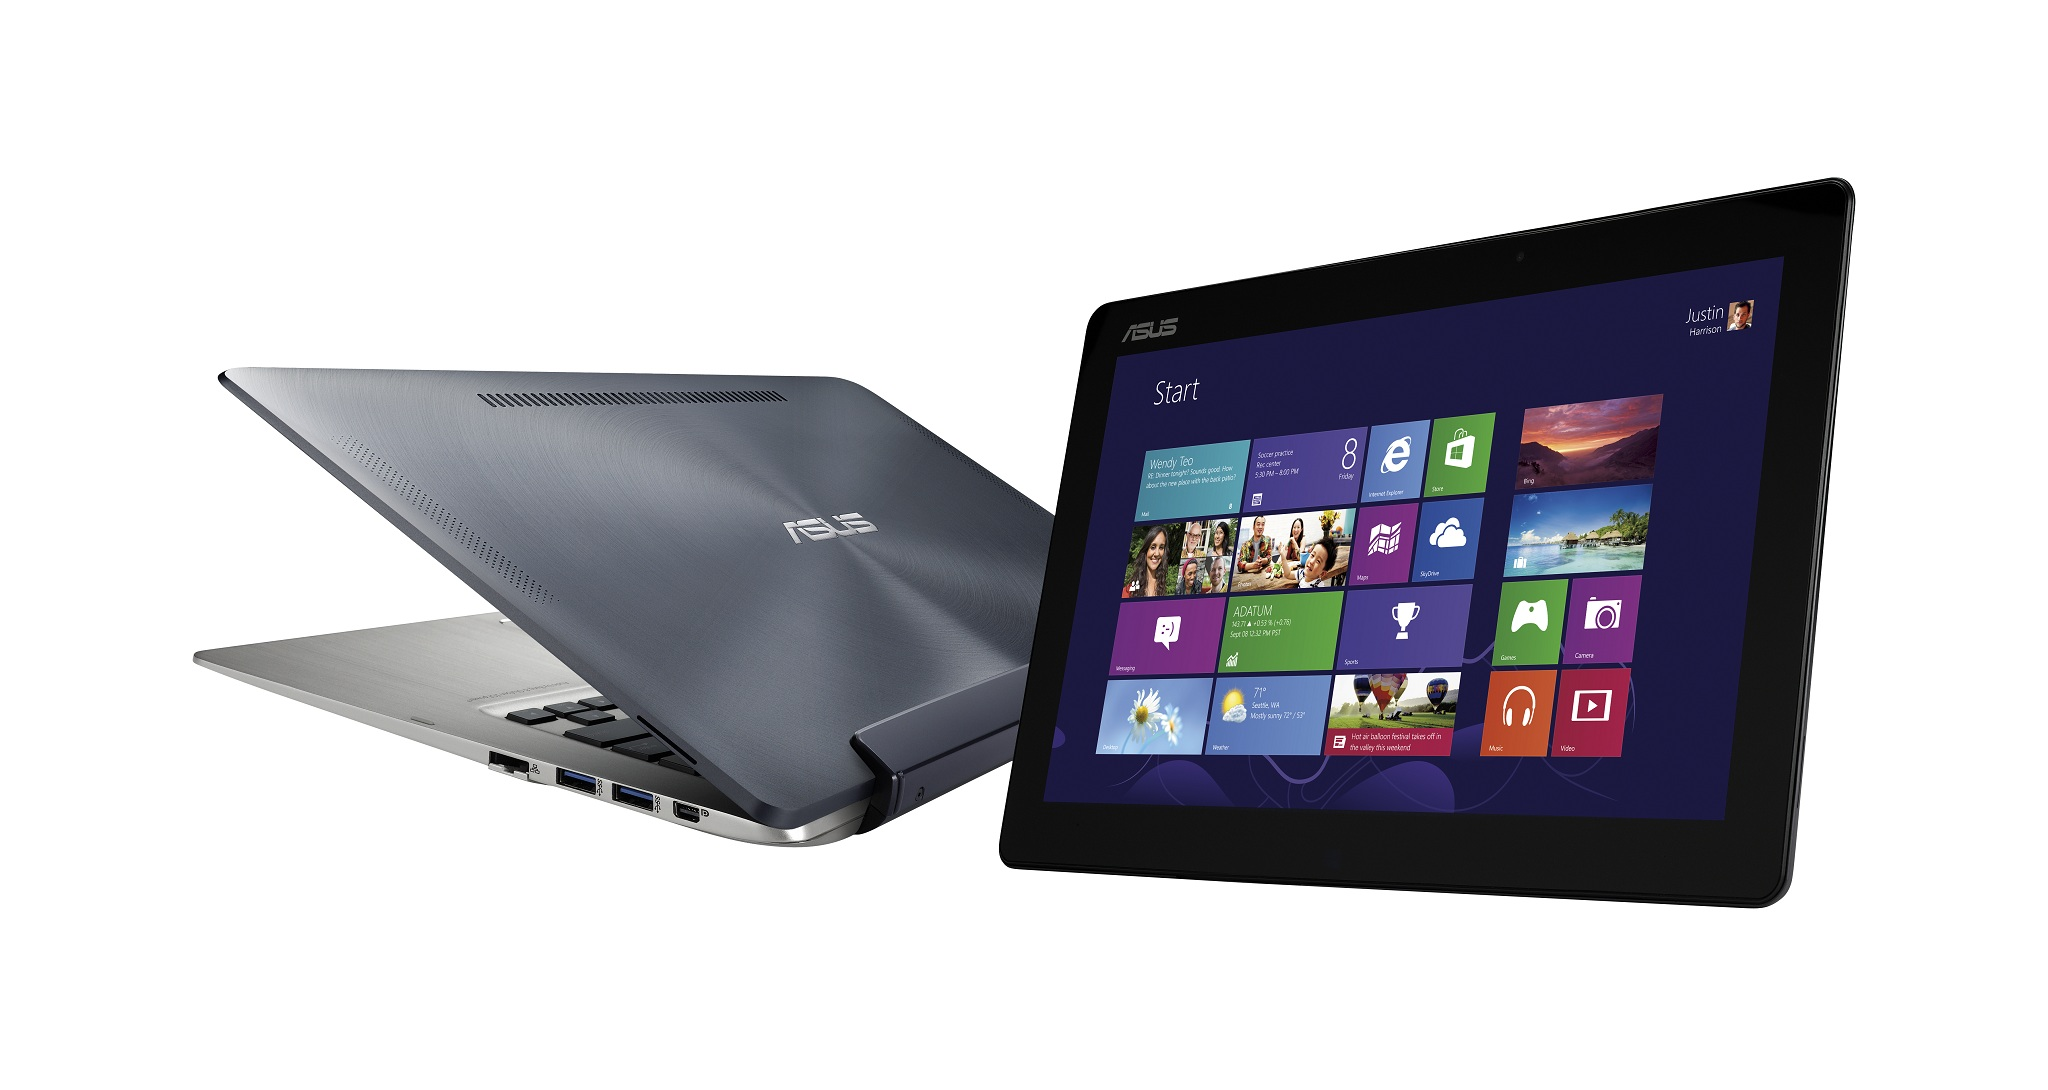 Asus Windows 8 And Rt Products Revealed